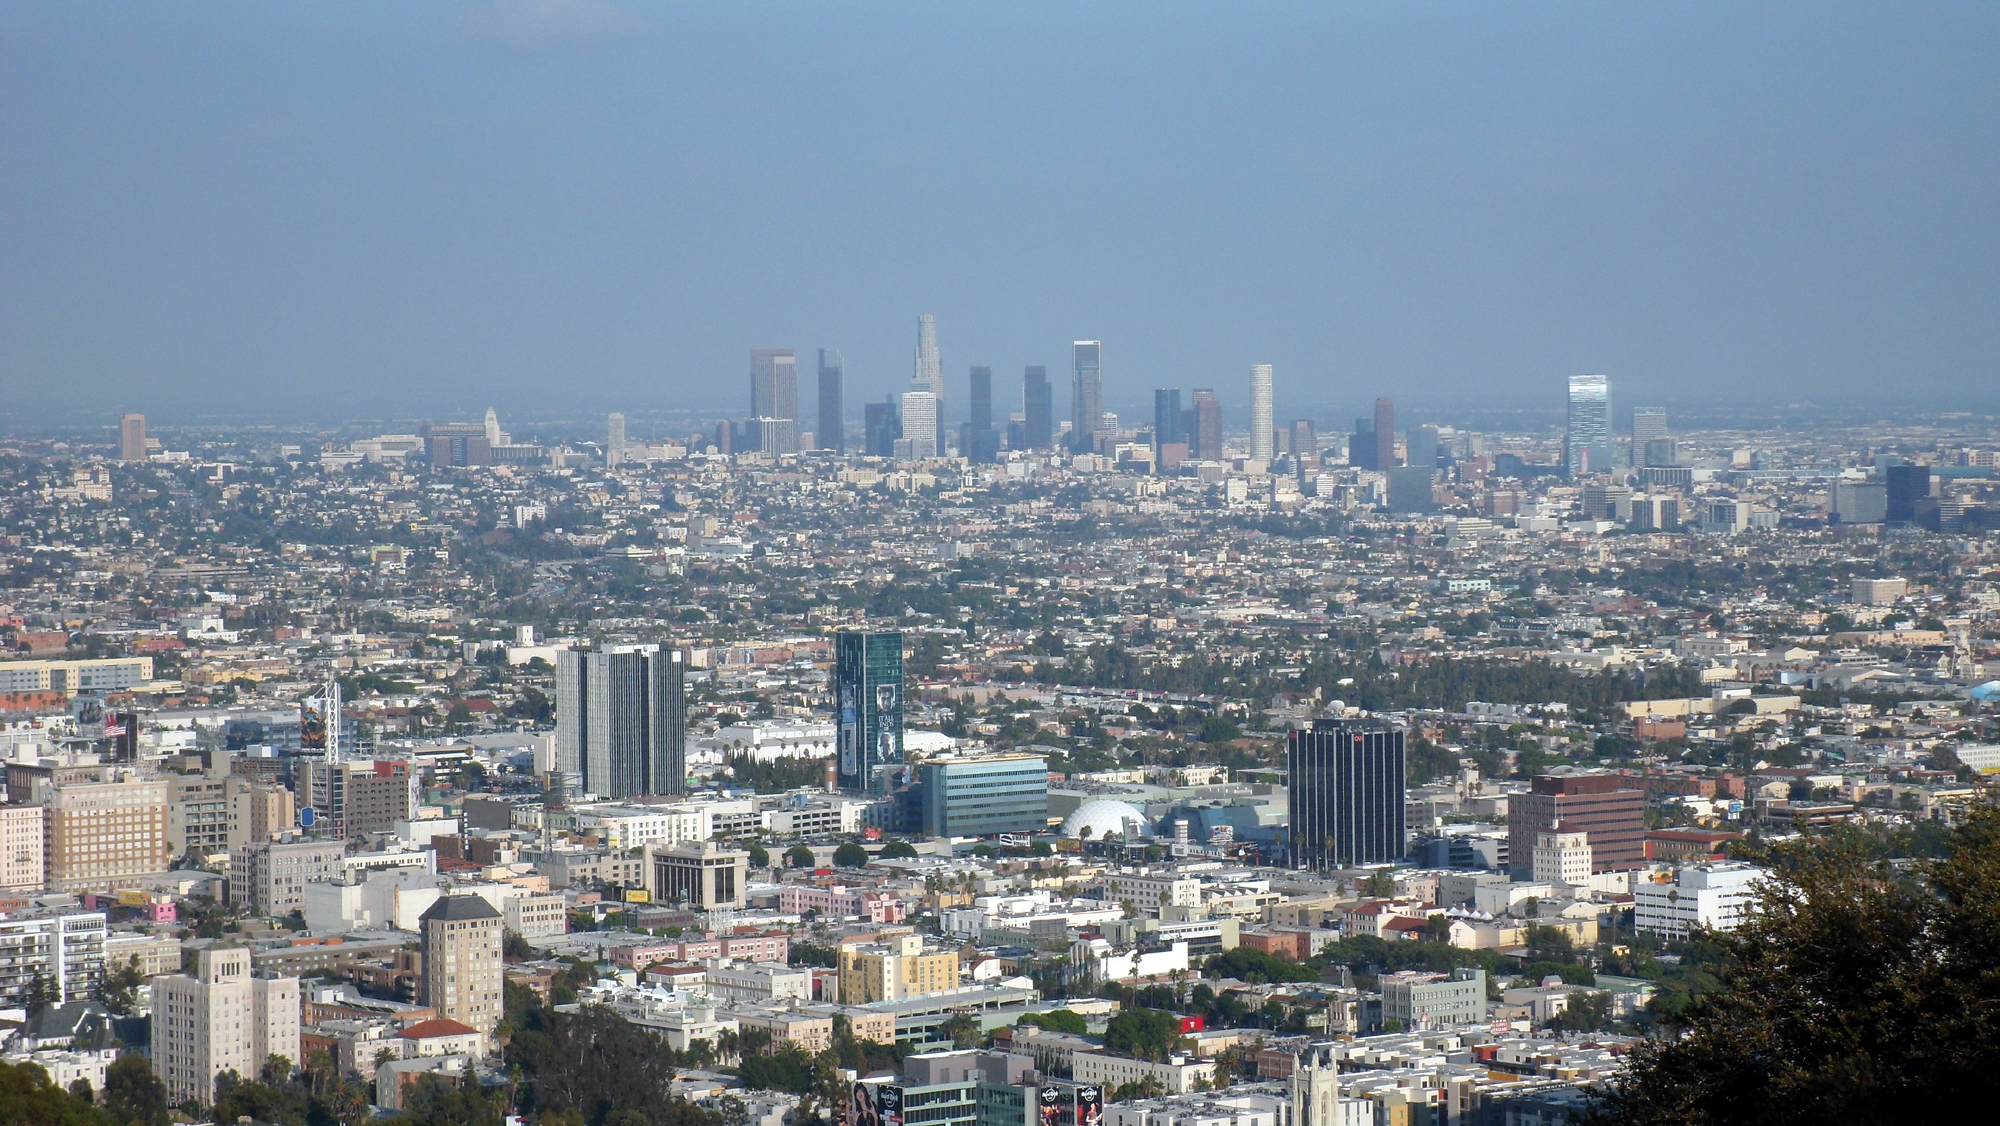 Why Are Some People Anal About City Development Such As Hollywood Residents Urban Planning